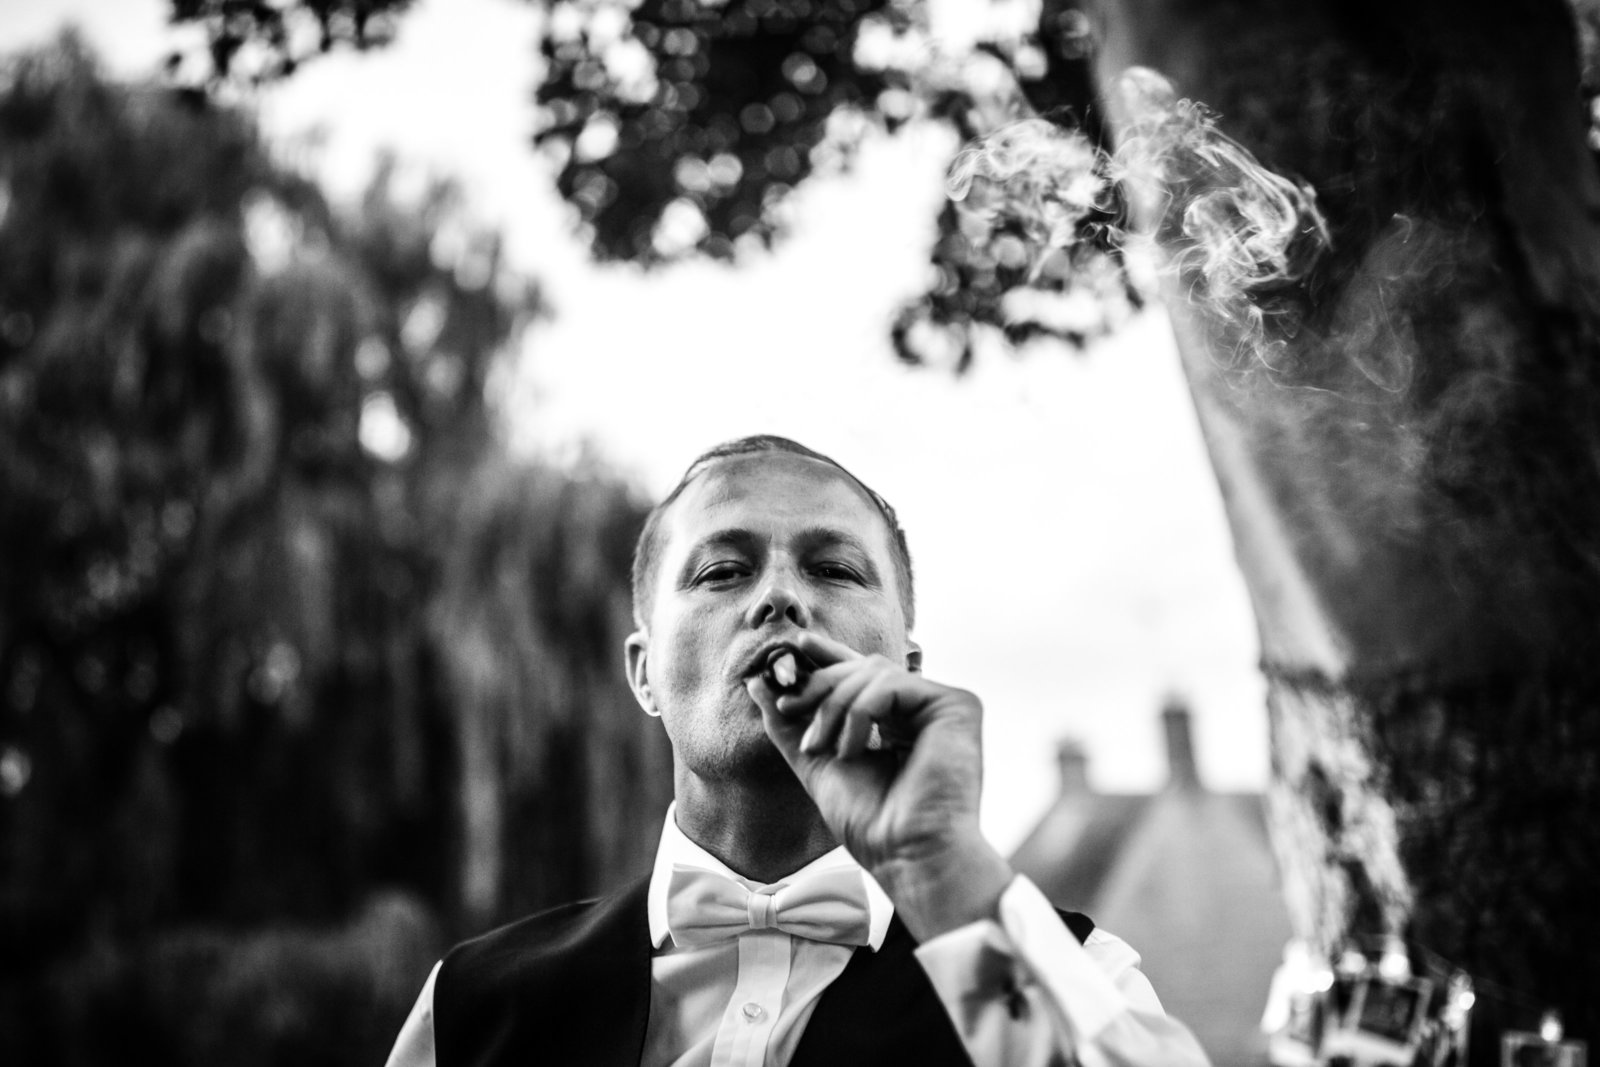 A Groom smokes a cigar during the reception at his wedding